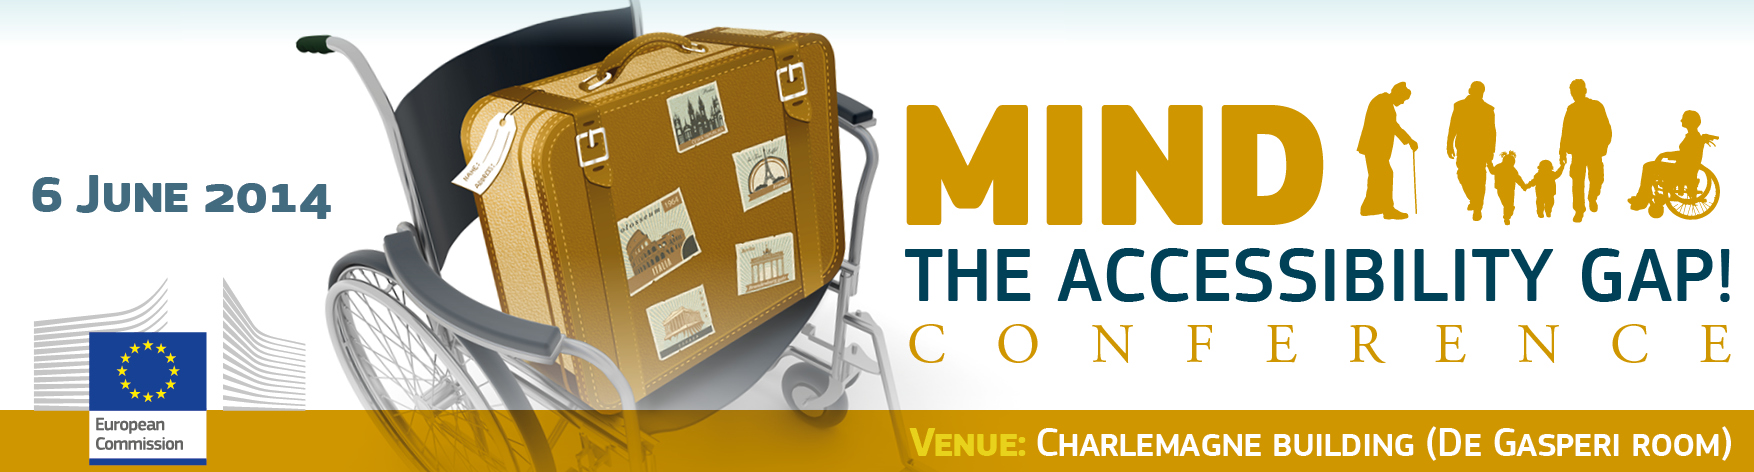 EU Conference, 6 June 2014, Mind the Accessibility Gap banner, with wheelchair and suitcase